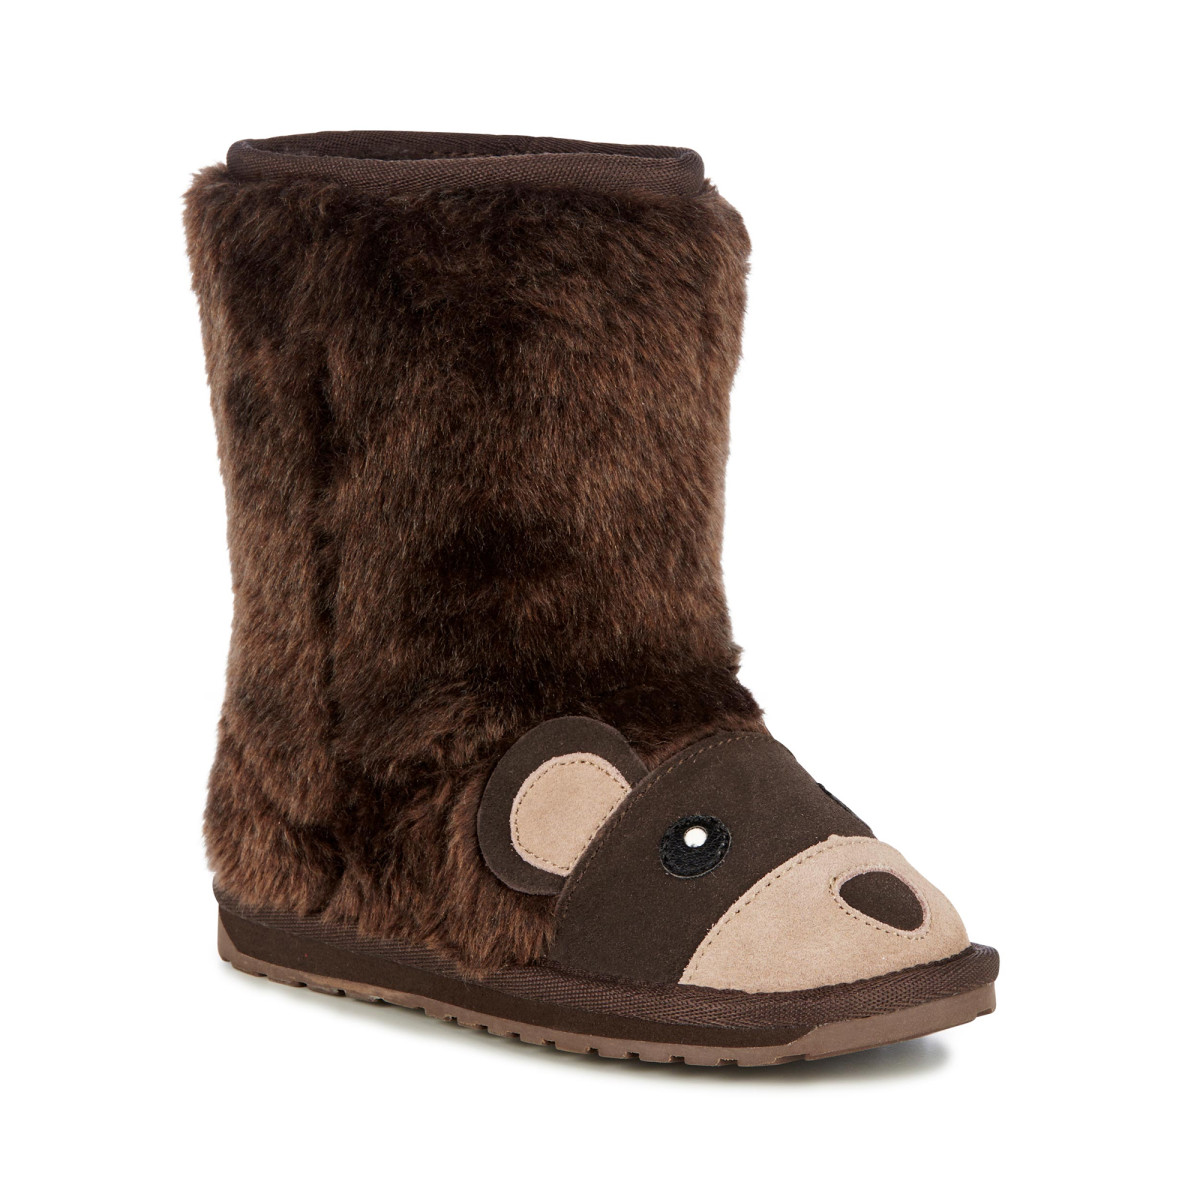 bear emu boot